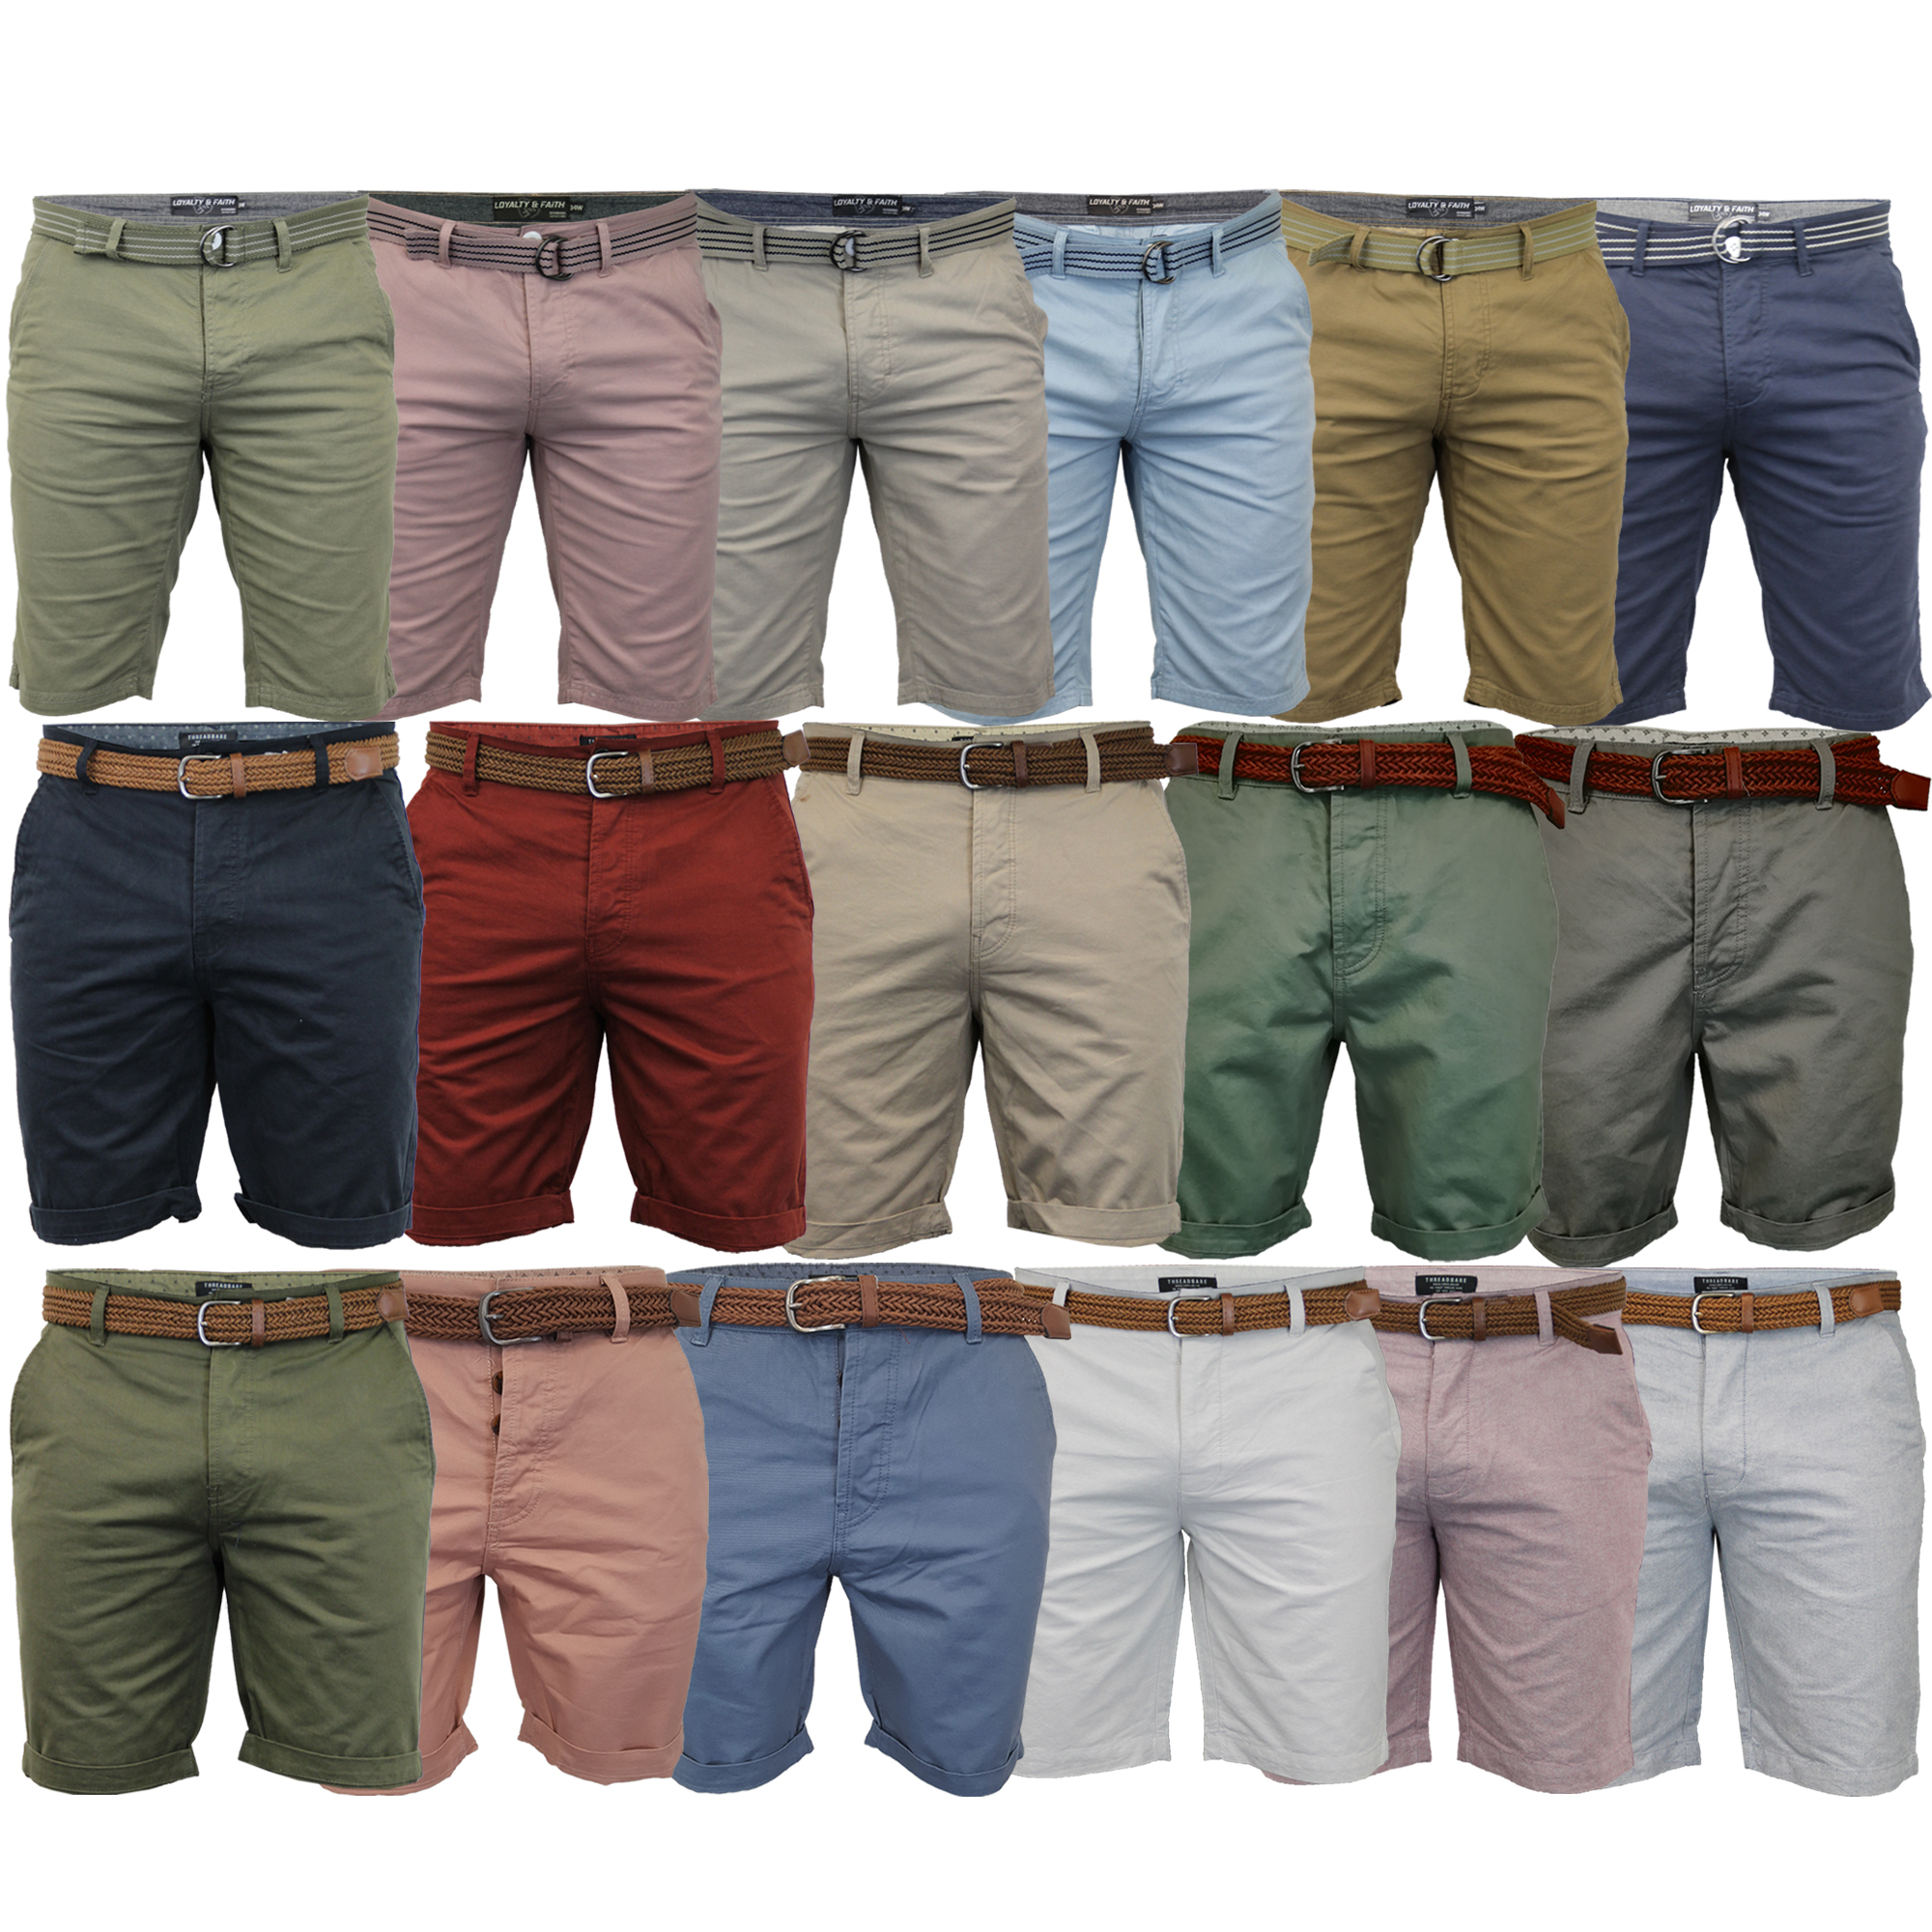 Mens-Chino-Shorts-Threadbare-Cotton-Oxford-Belted-Loyalty-amp-Faith-Seven-Series thumbnail 15